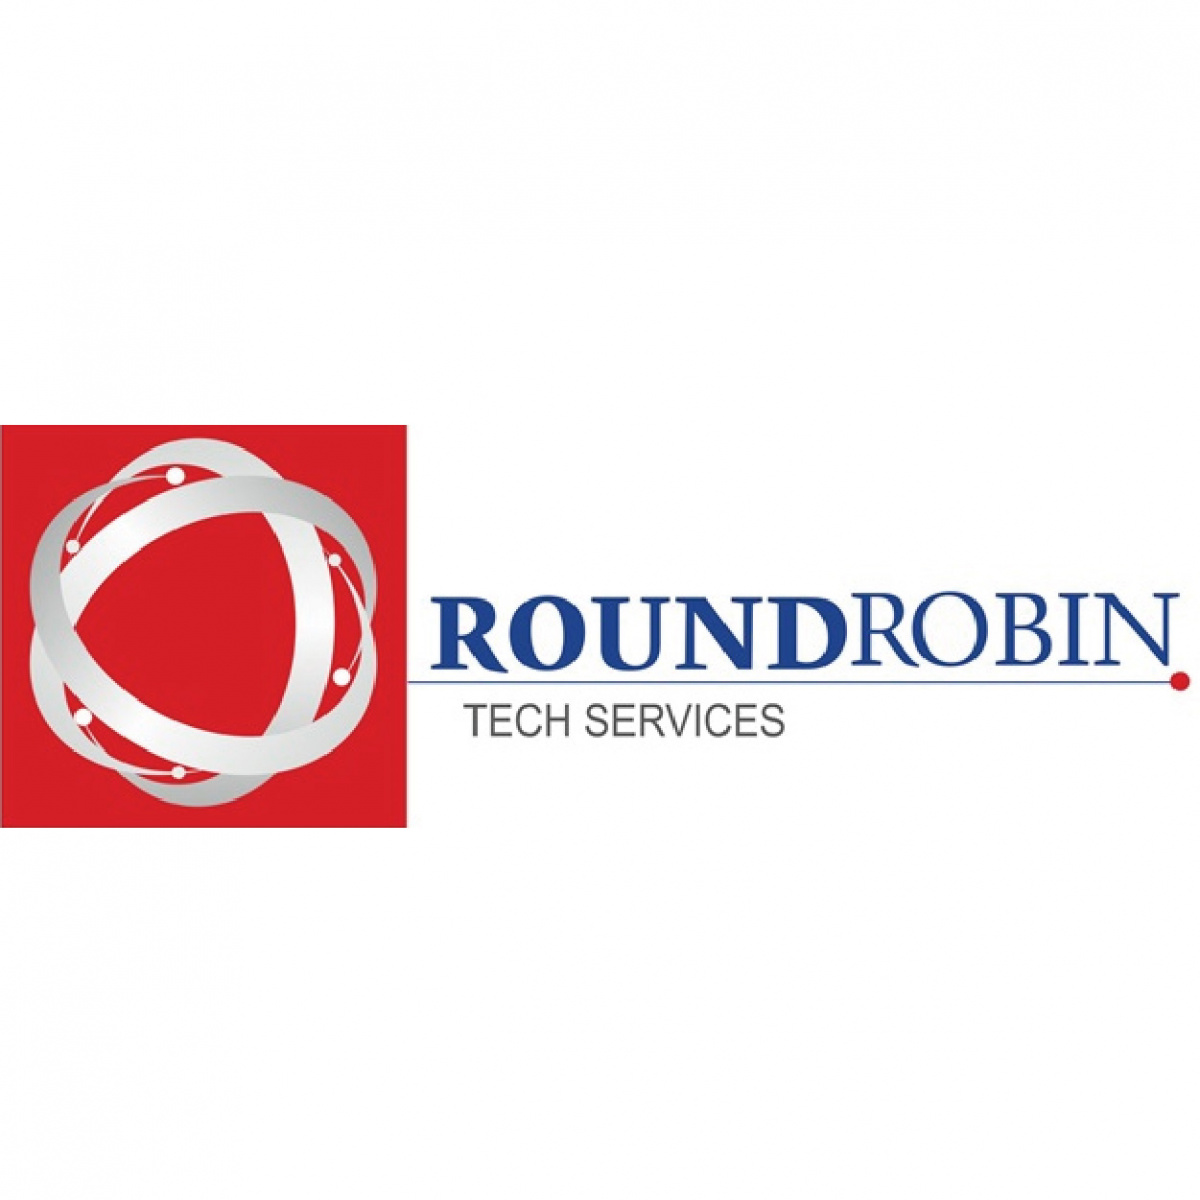 SecureAge Partner Roundrobin Tech Services